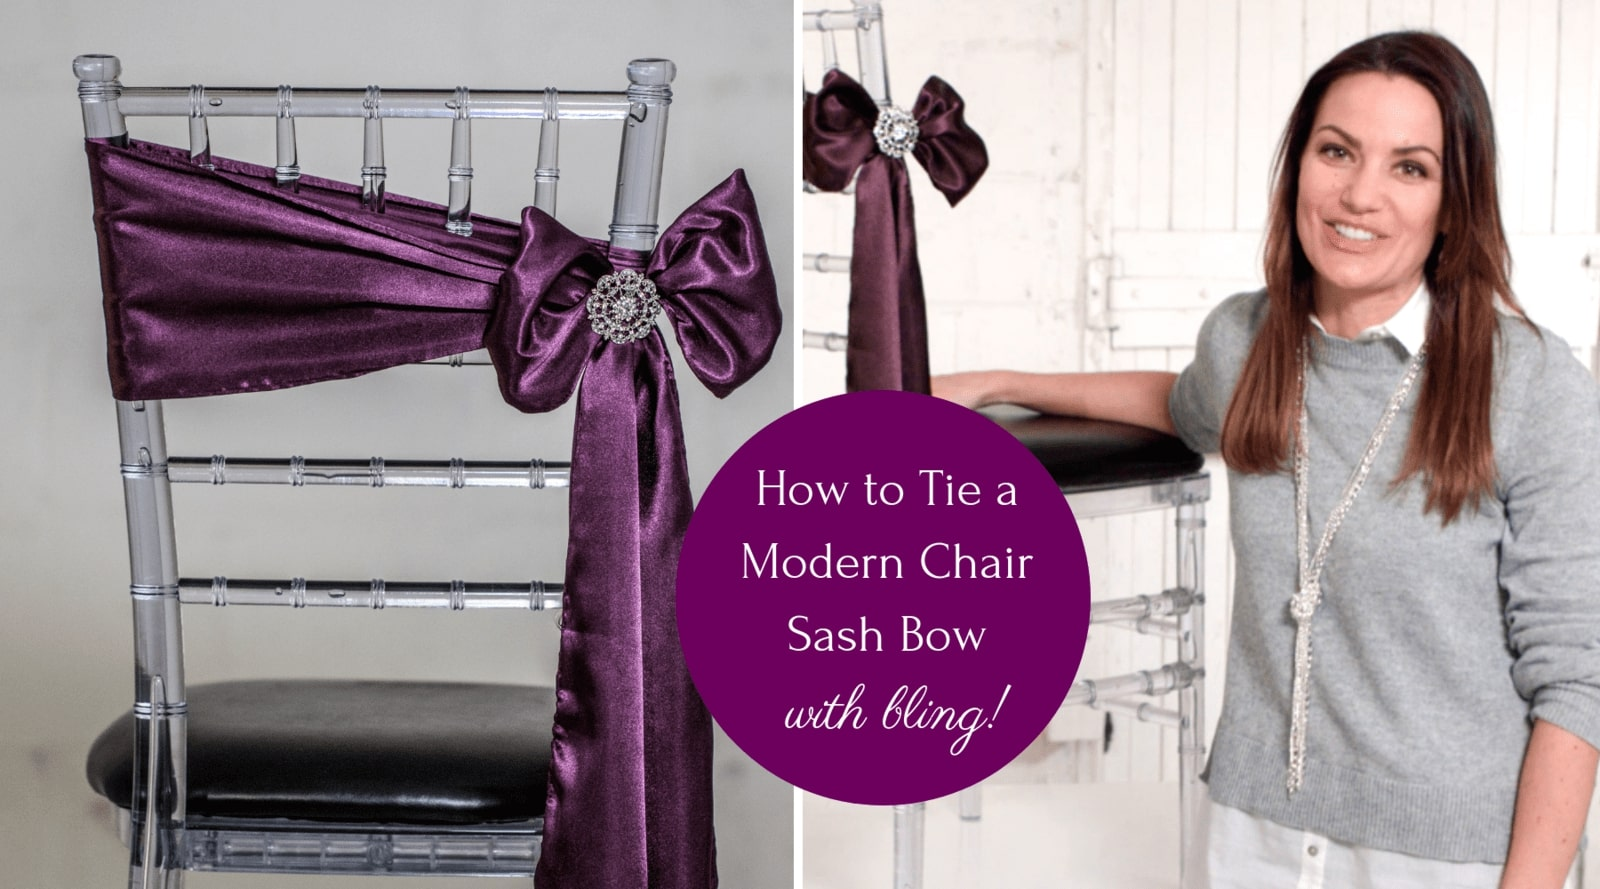 How to Tie a Chair Sash - The Angled Bow Method